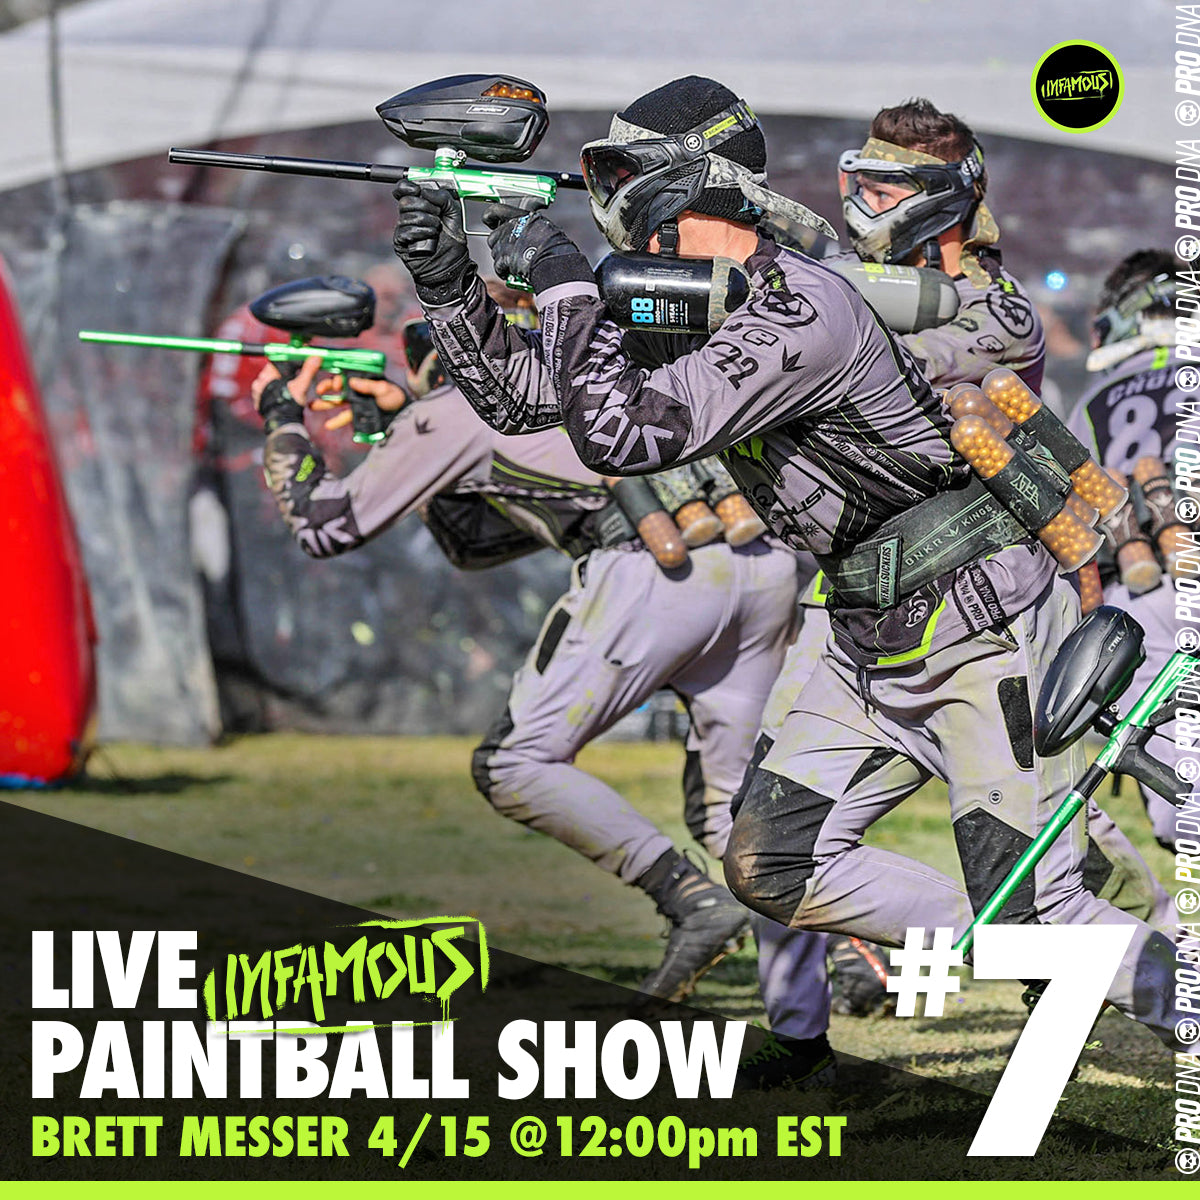 Infamous Live Paintball Show #7 - Brett Messer